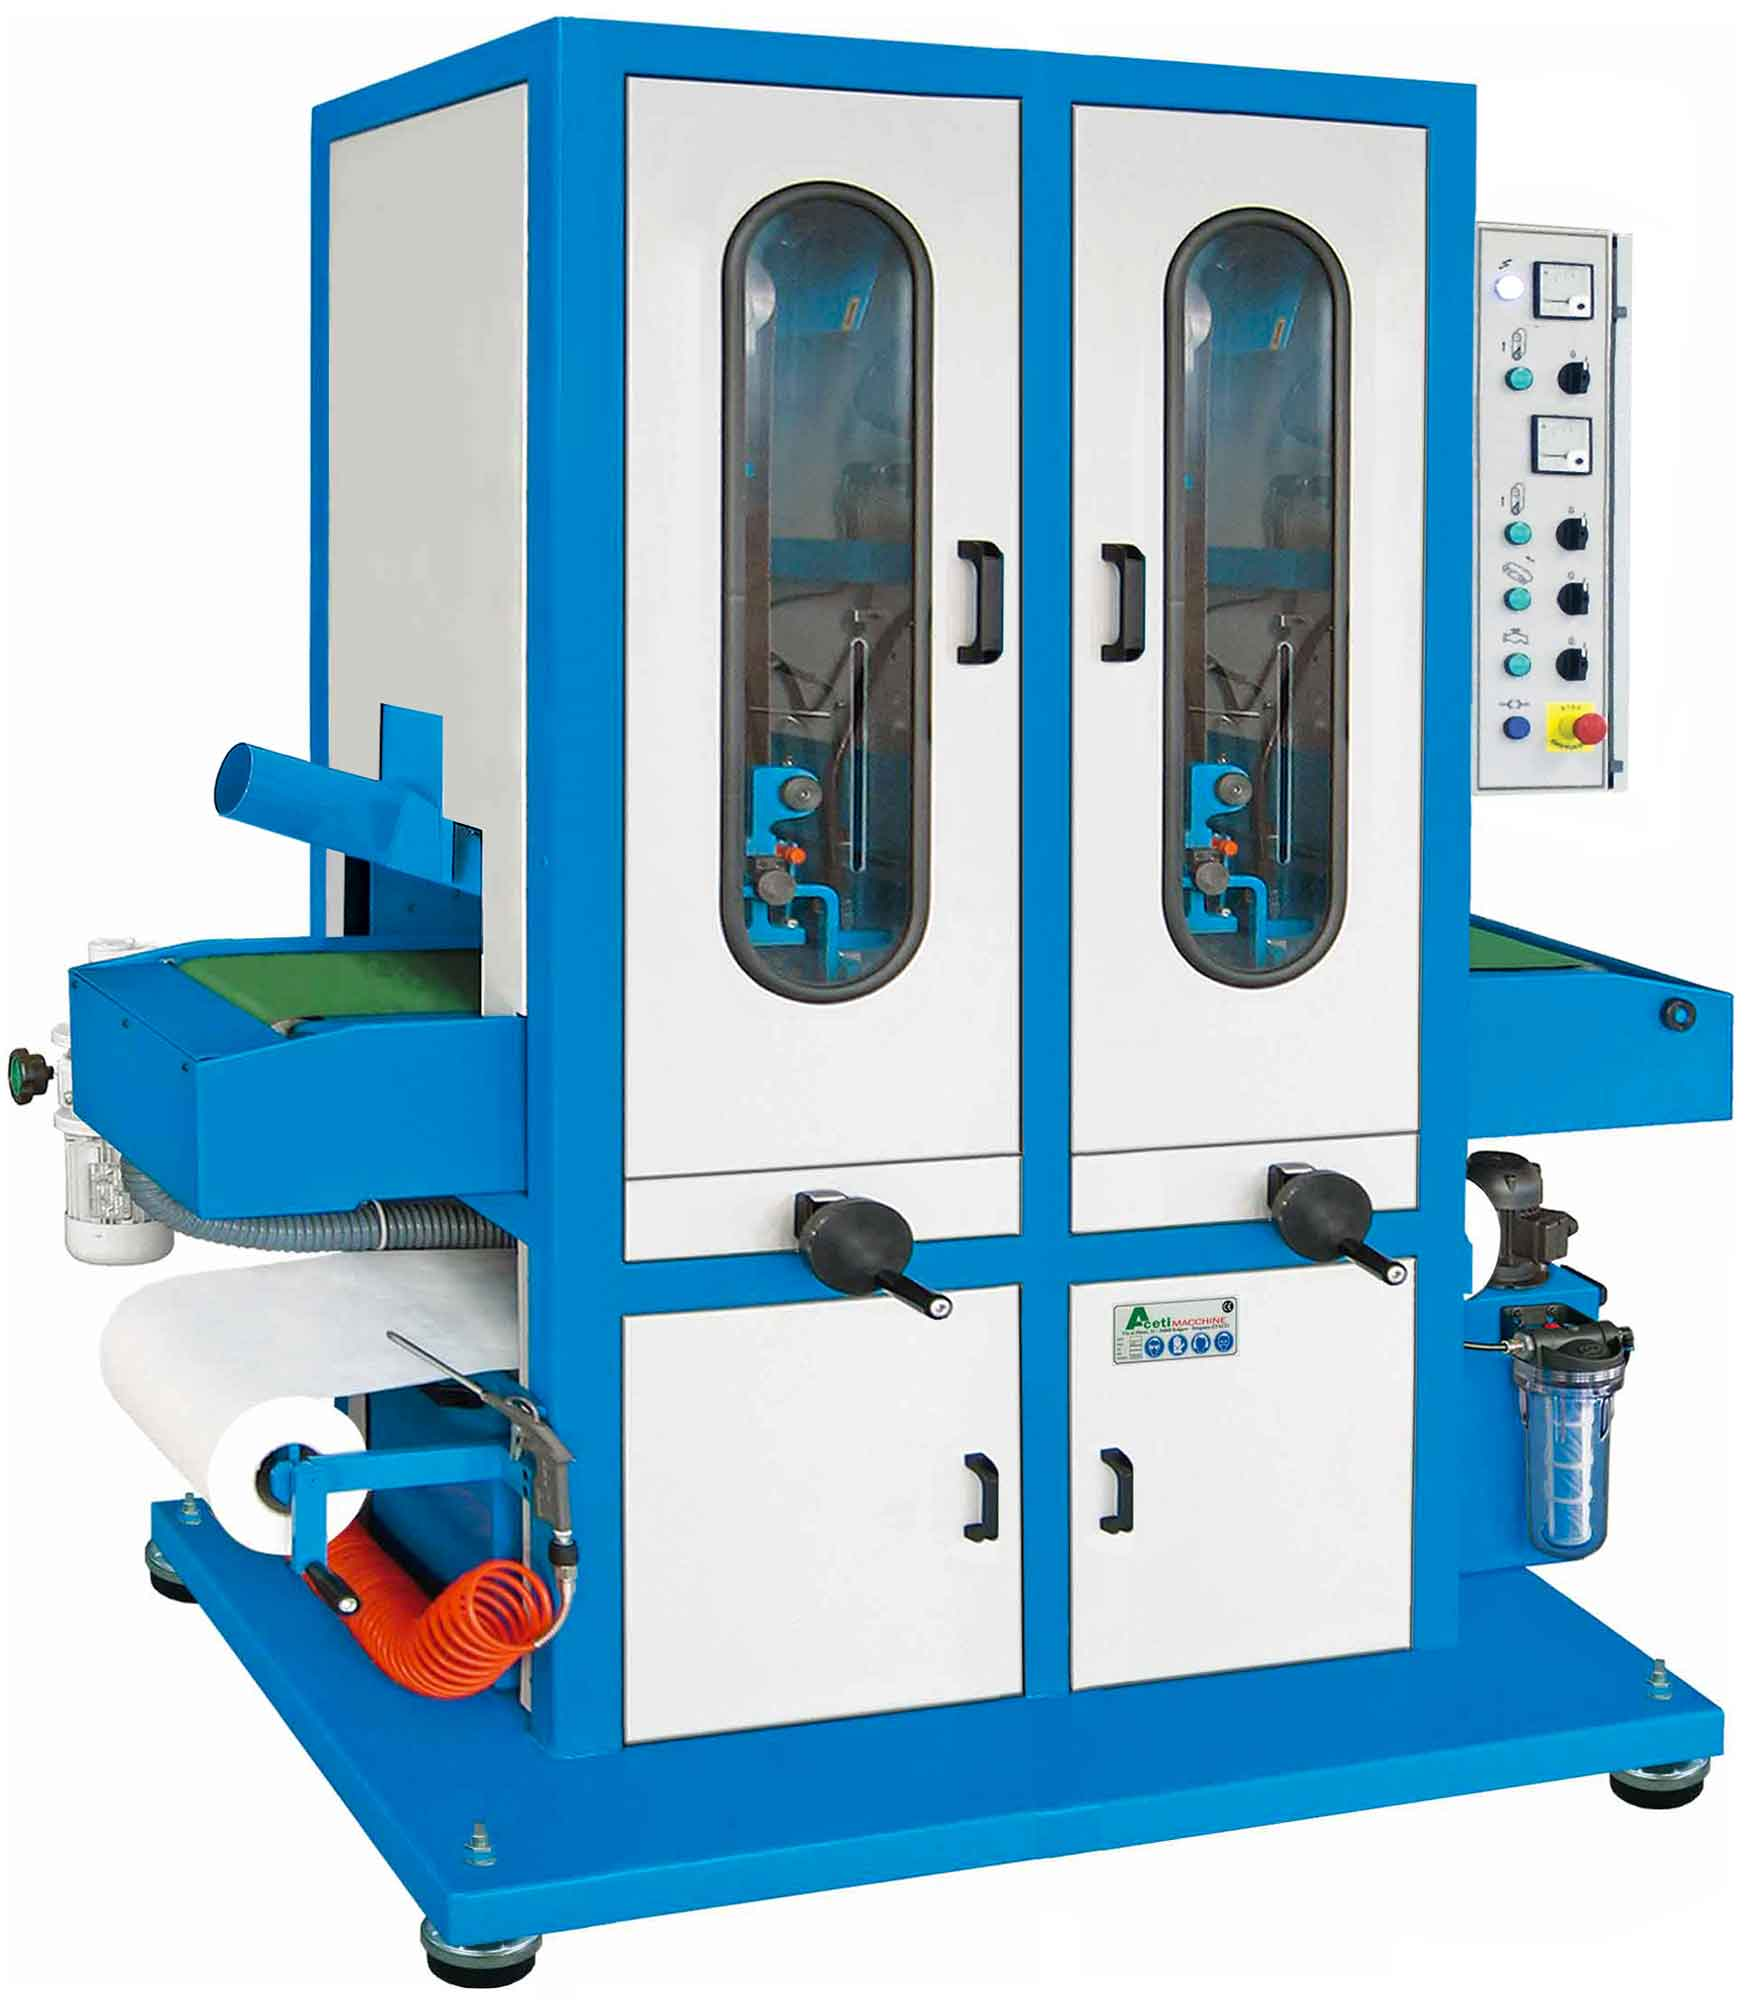 ART.76-2N - Polishing machine for flat surfaces by wet system | 2 Belt grinding units